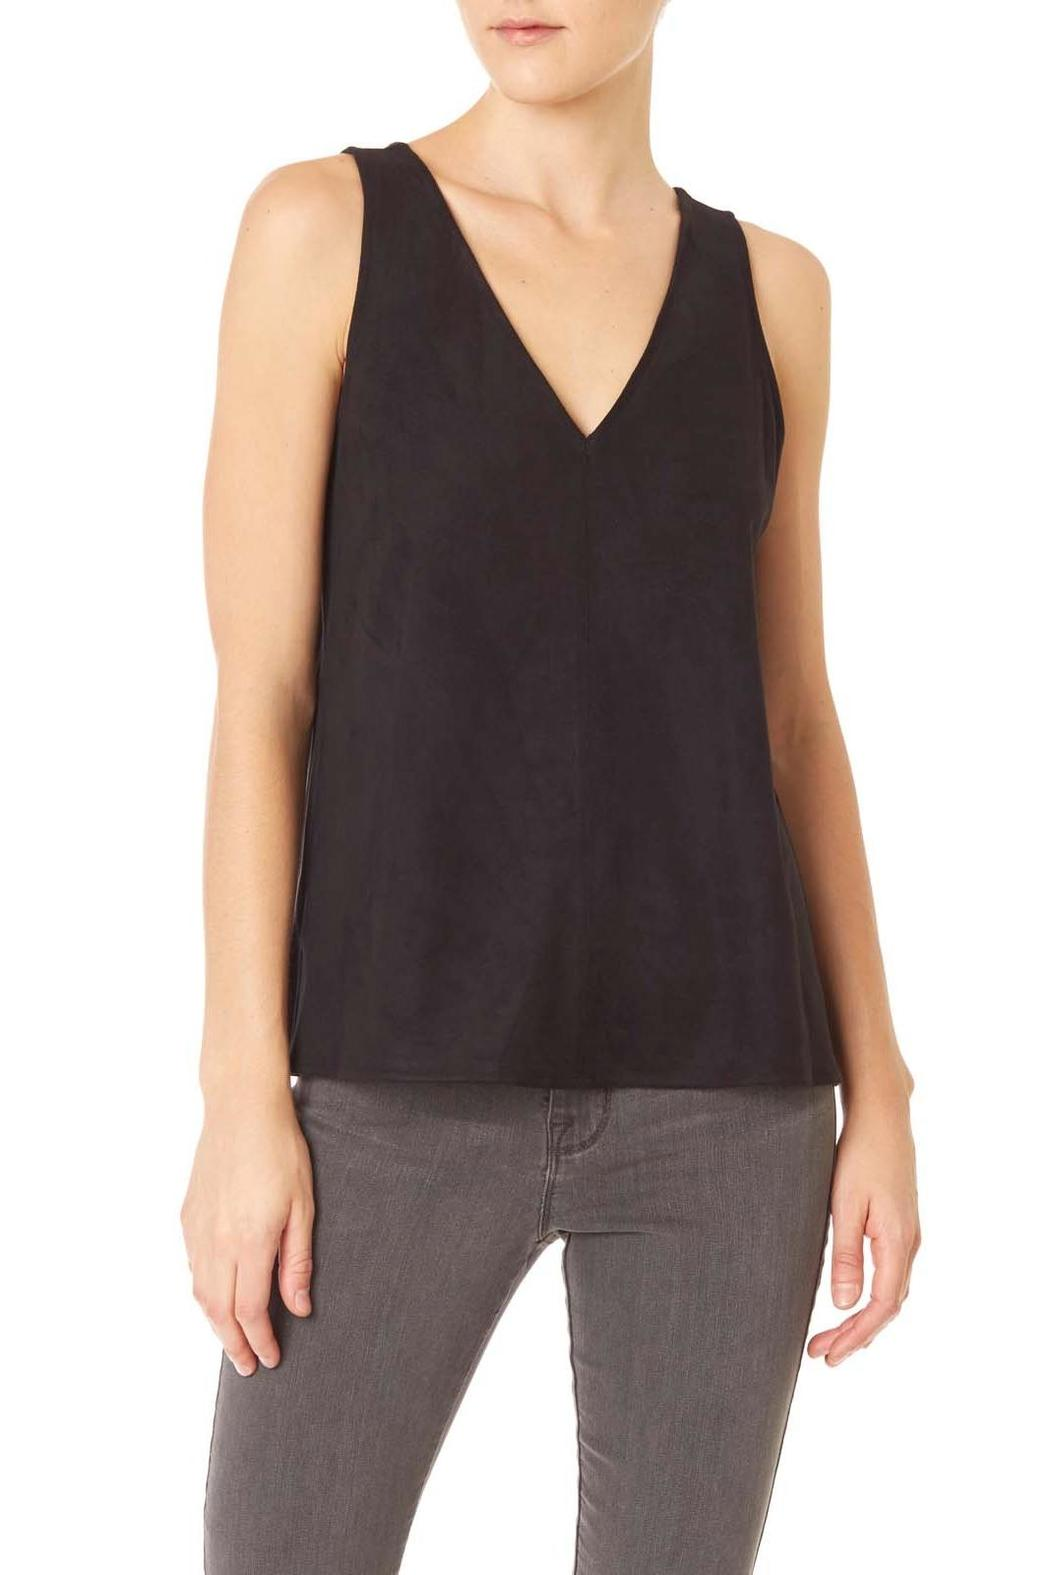 Sanctuary Black Suede Top - Main Image